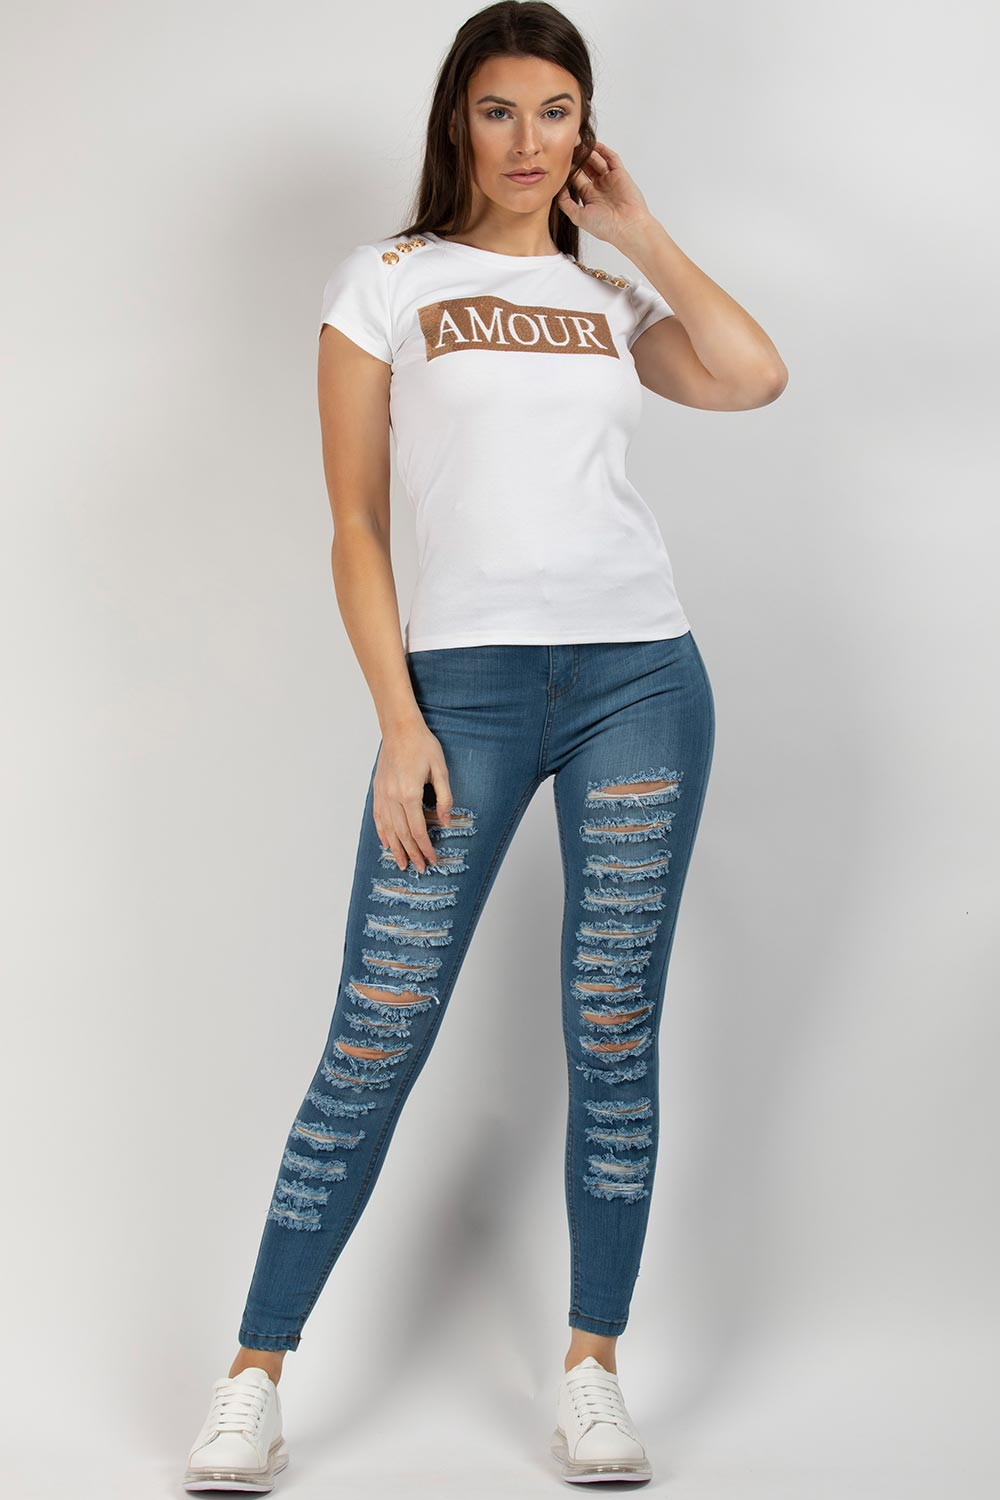 amour slogan t shirt white